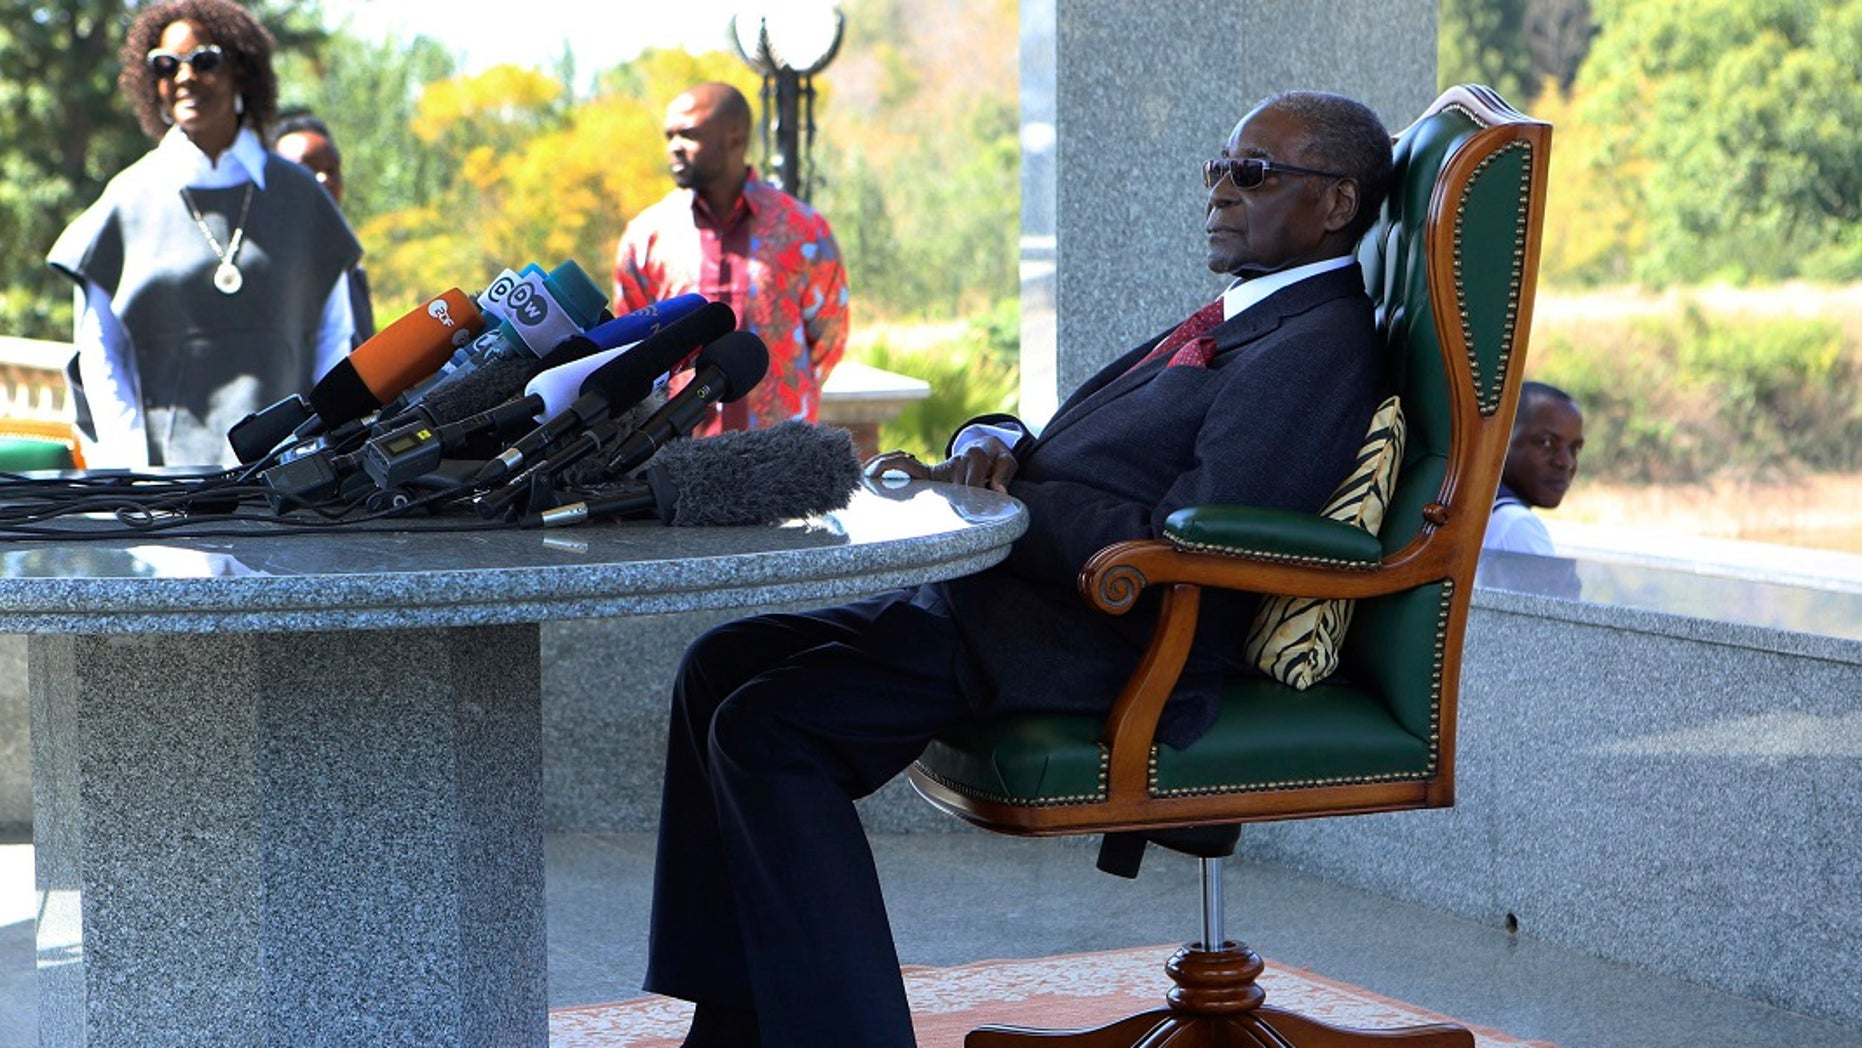 Mugabe can no longer walk, says Zimbabwean president